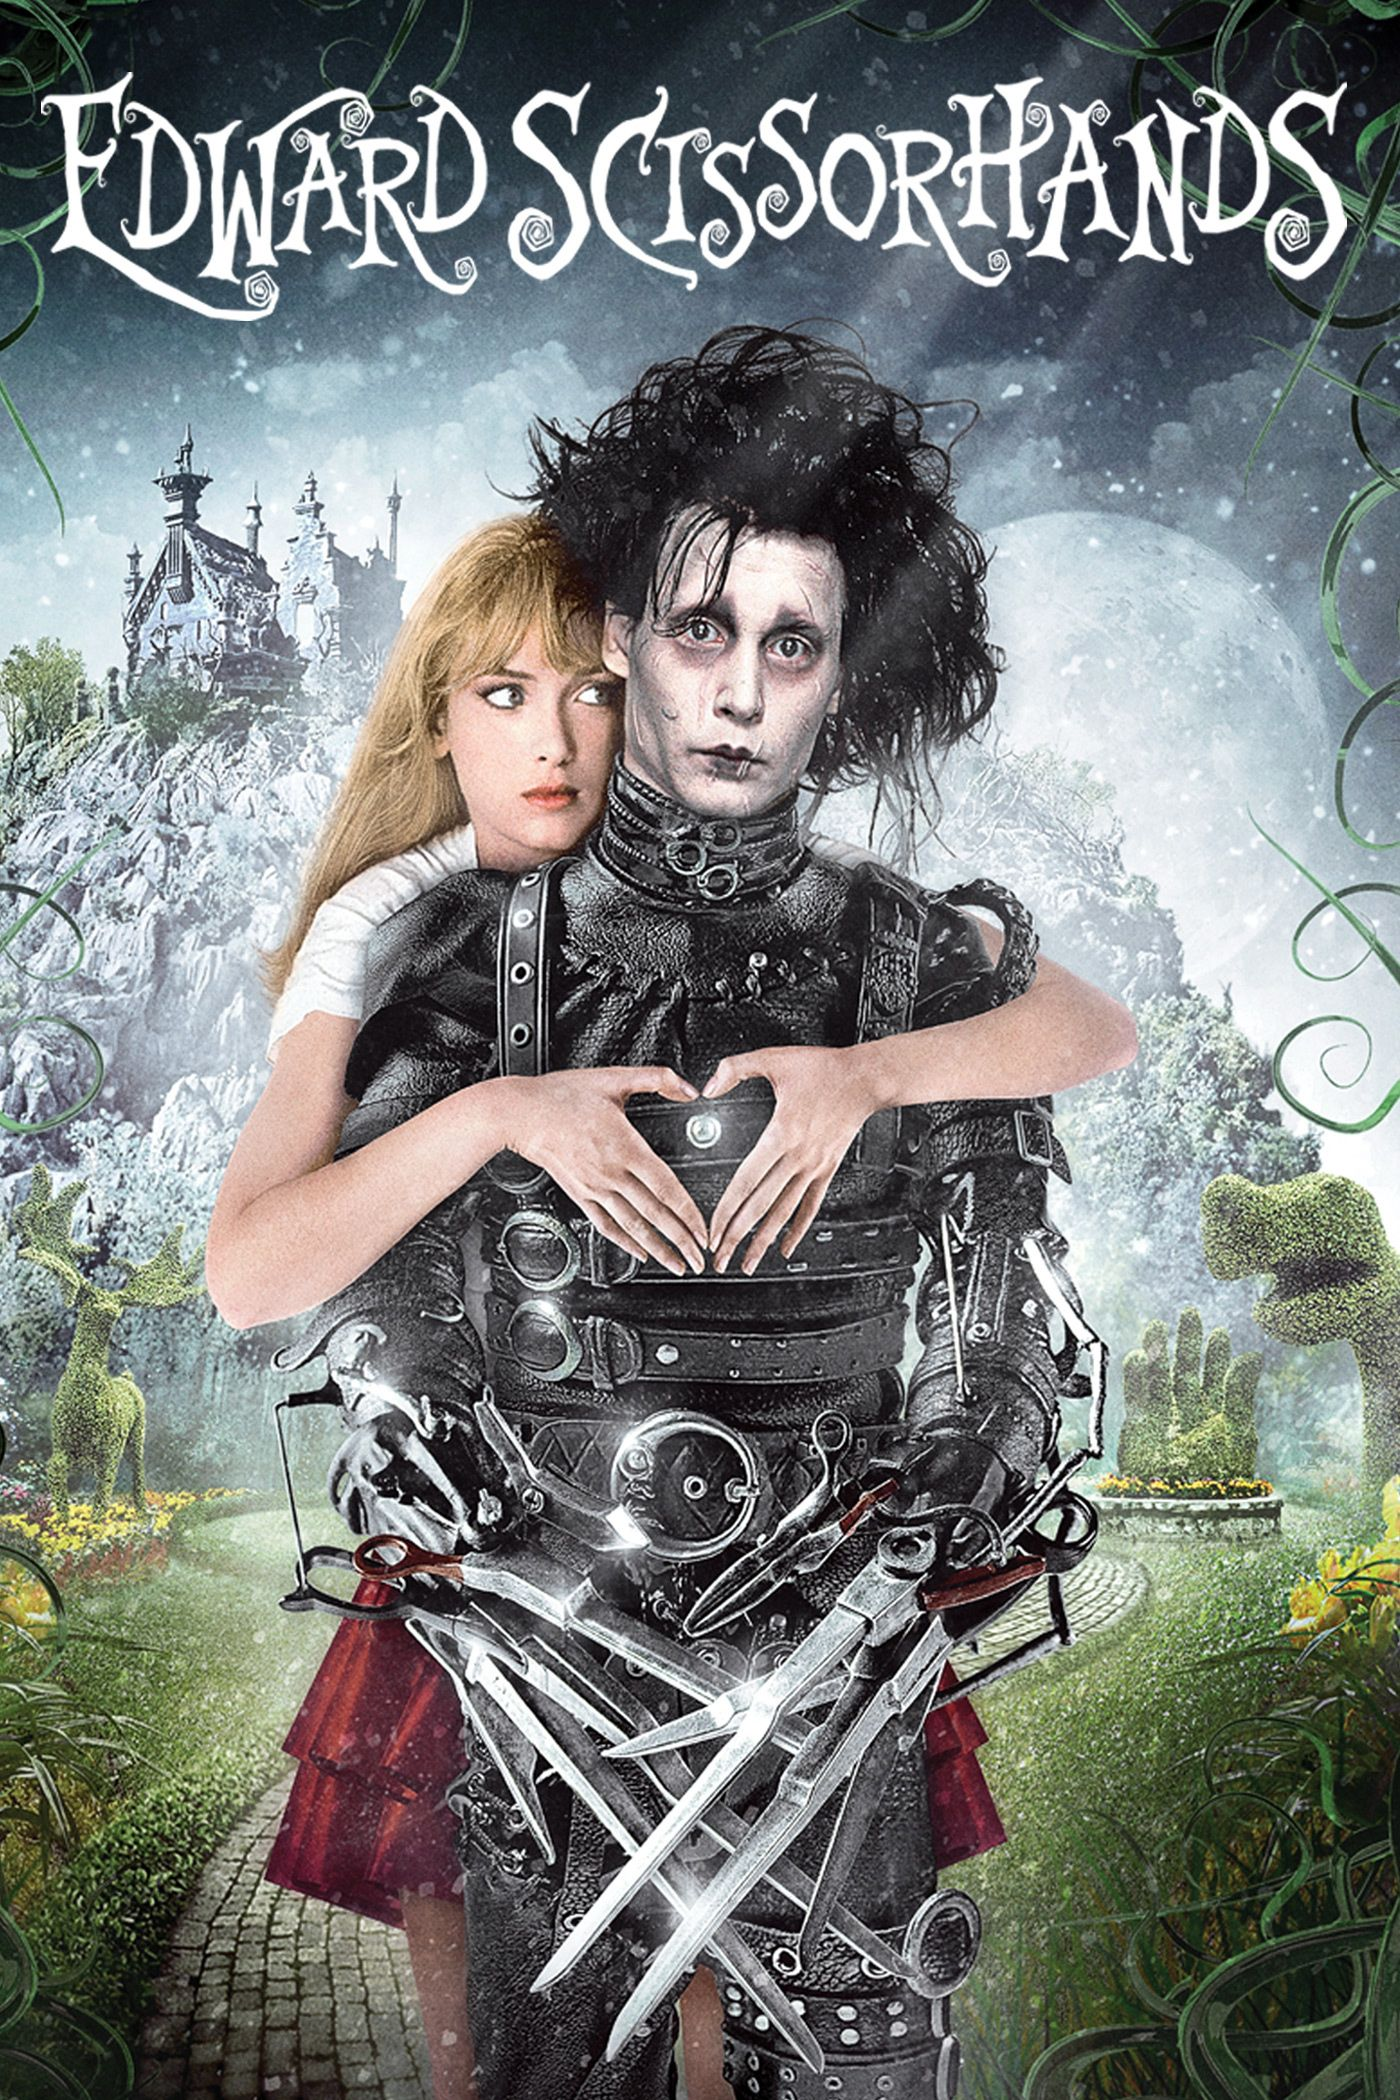 Edward's creator did not finish his hands; instead, he has metal scissors for his hands. Peg discovered him, welcomed him, and received him as one of her own.